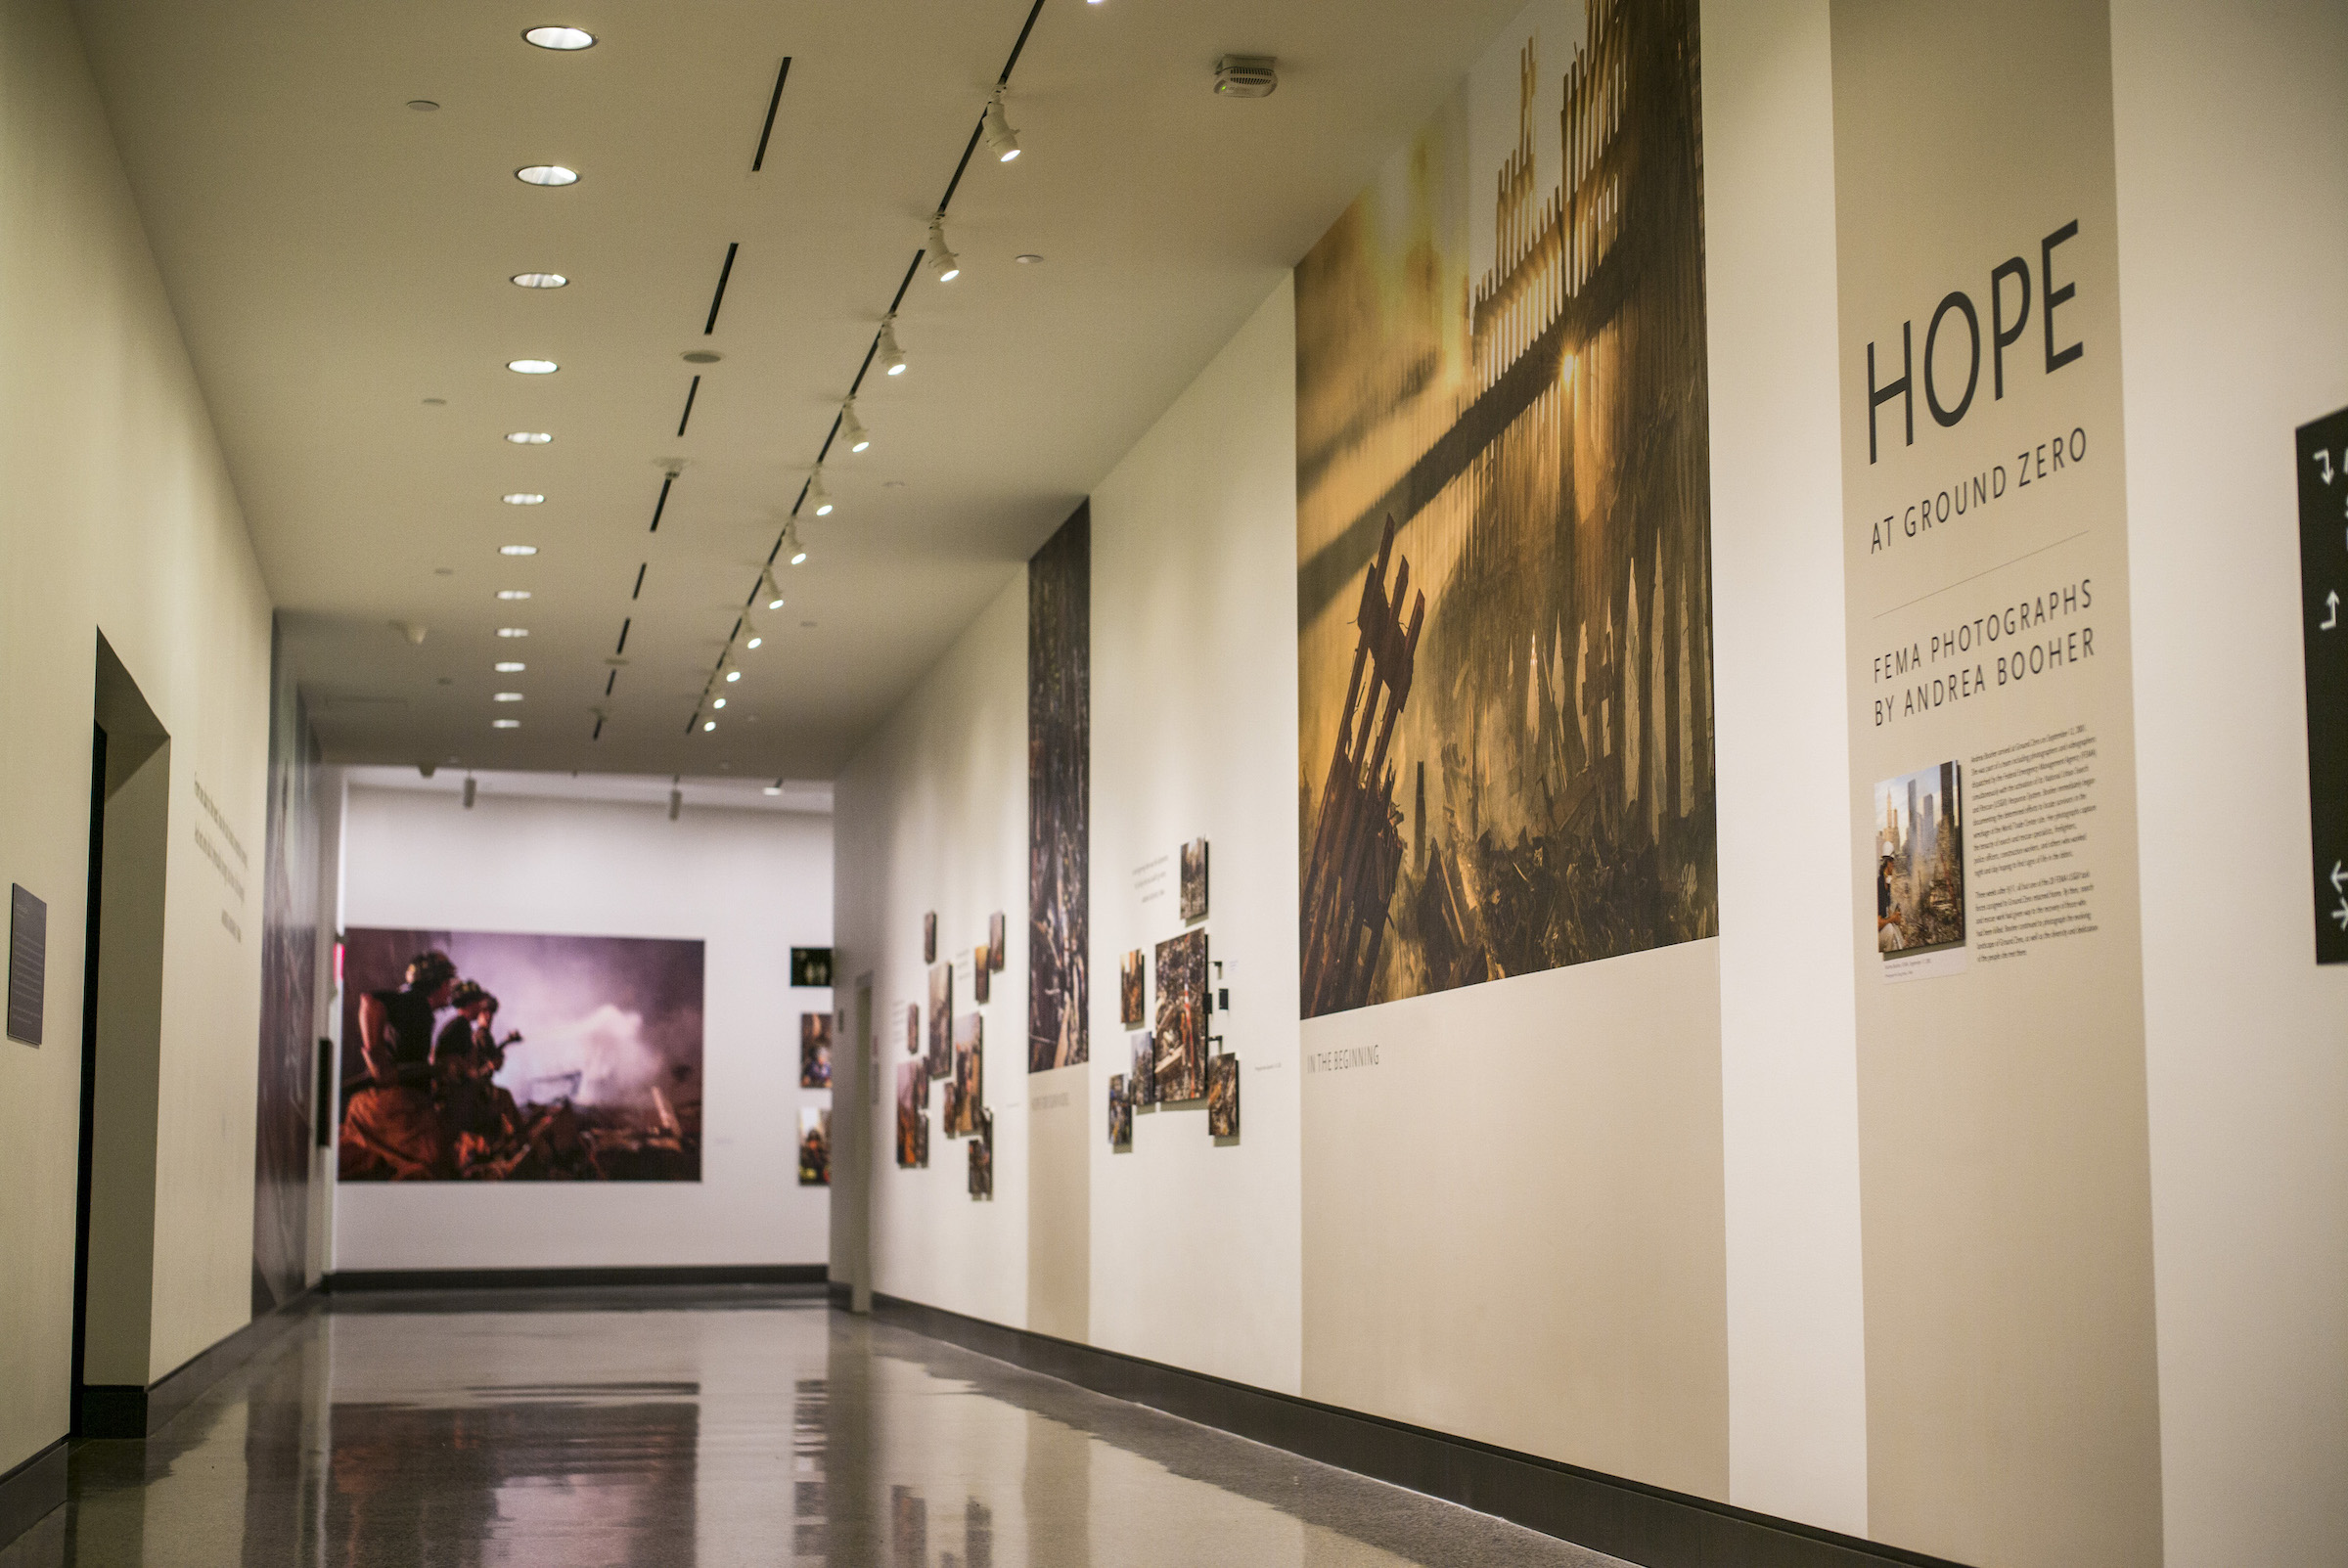 A collection of photographs documenting the work of dedicated men and women at Ground Zero after 9/11 are displayed as part of the exhibition Hope at Ground Zero: FEMA Photographs by Andrea Booher.